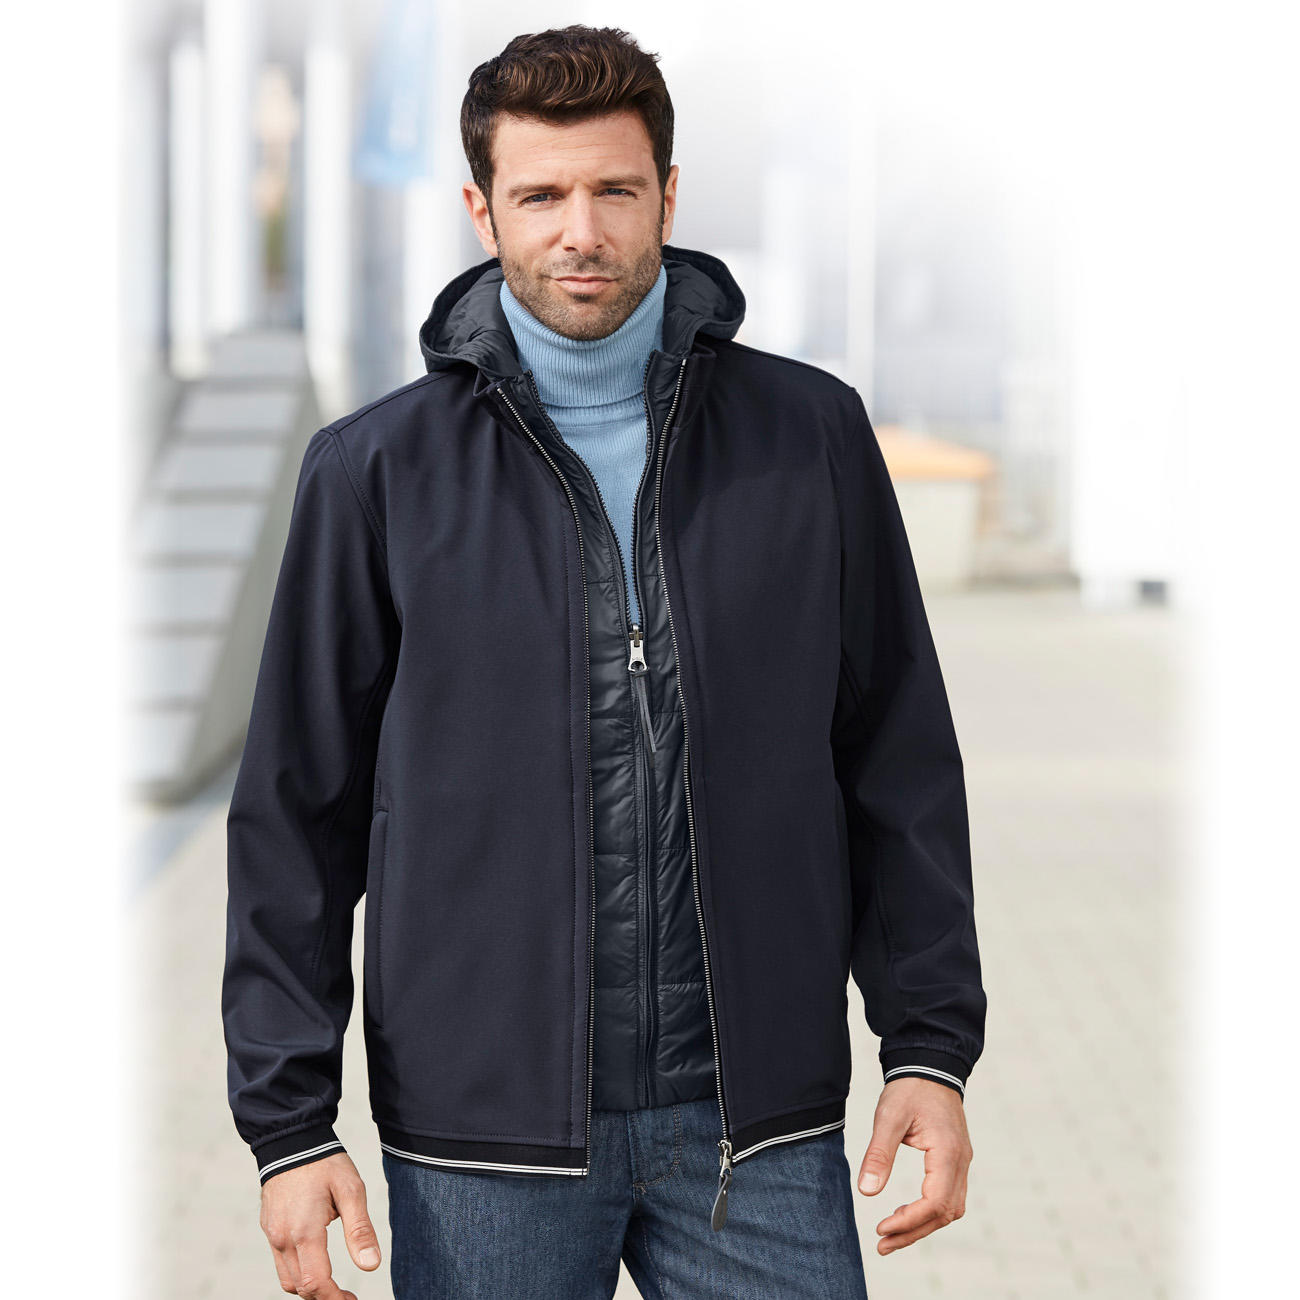 aigle 3 in 1 herren allwetterjacke online kaufen. Black Bedroom Furniture Sets. Home Design Ideas